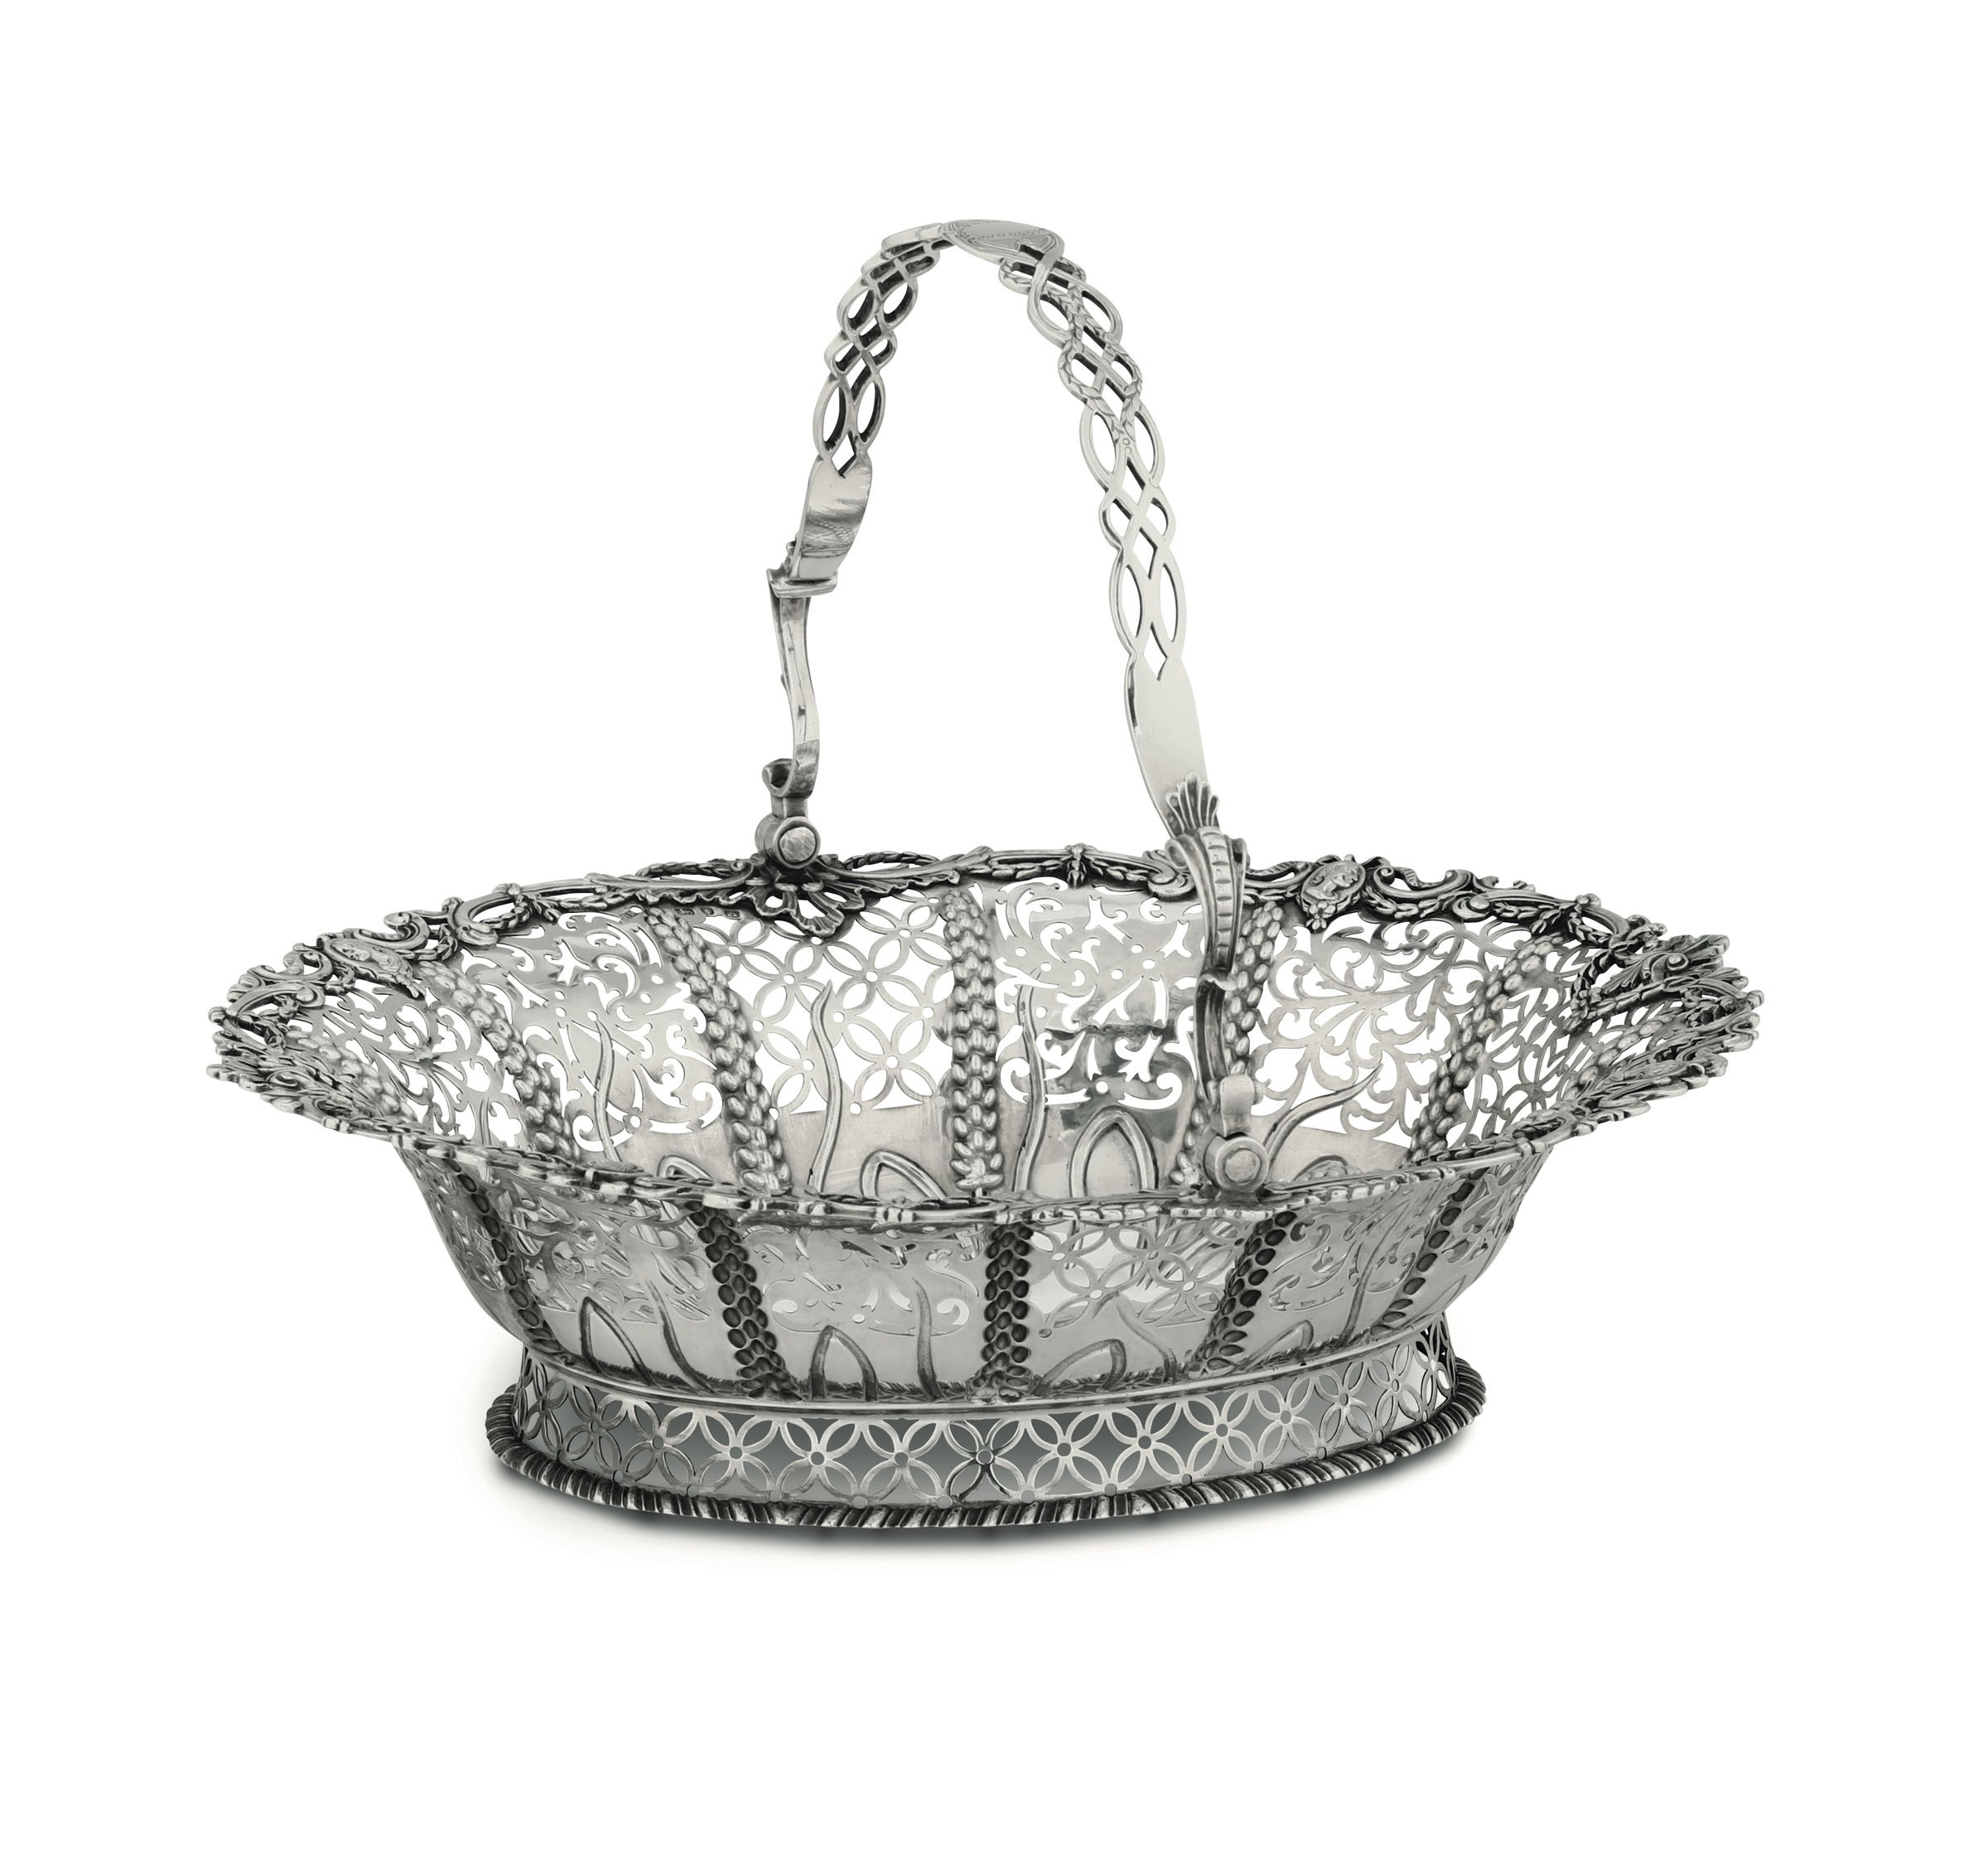 Lot 20 - A silver basket, London, 1771 - Molten, embossed and chiselled silver. 36x31x10cm, [...]